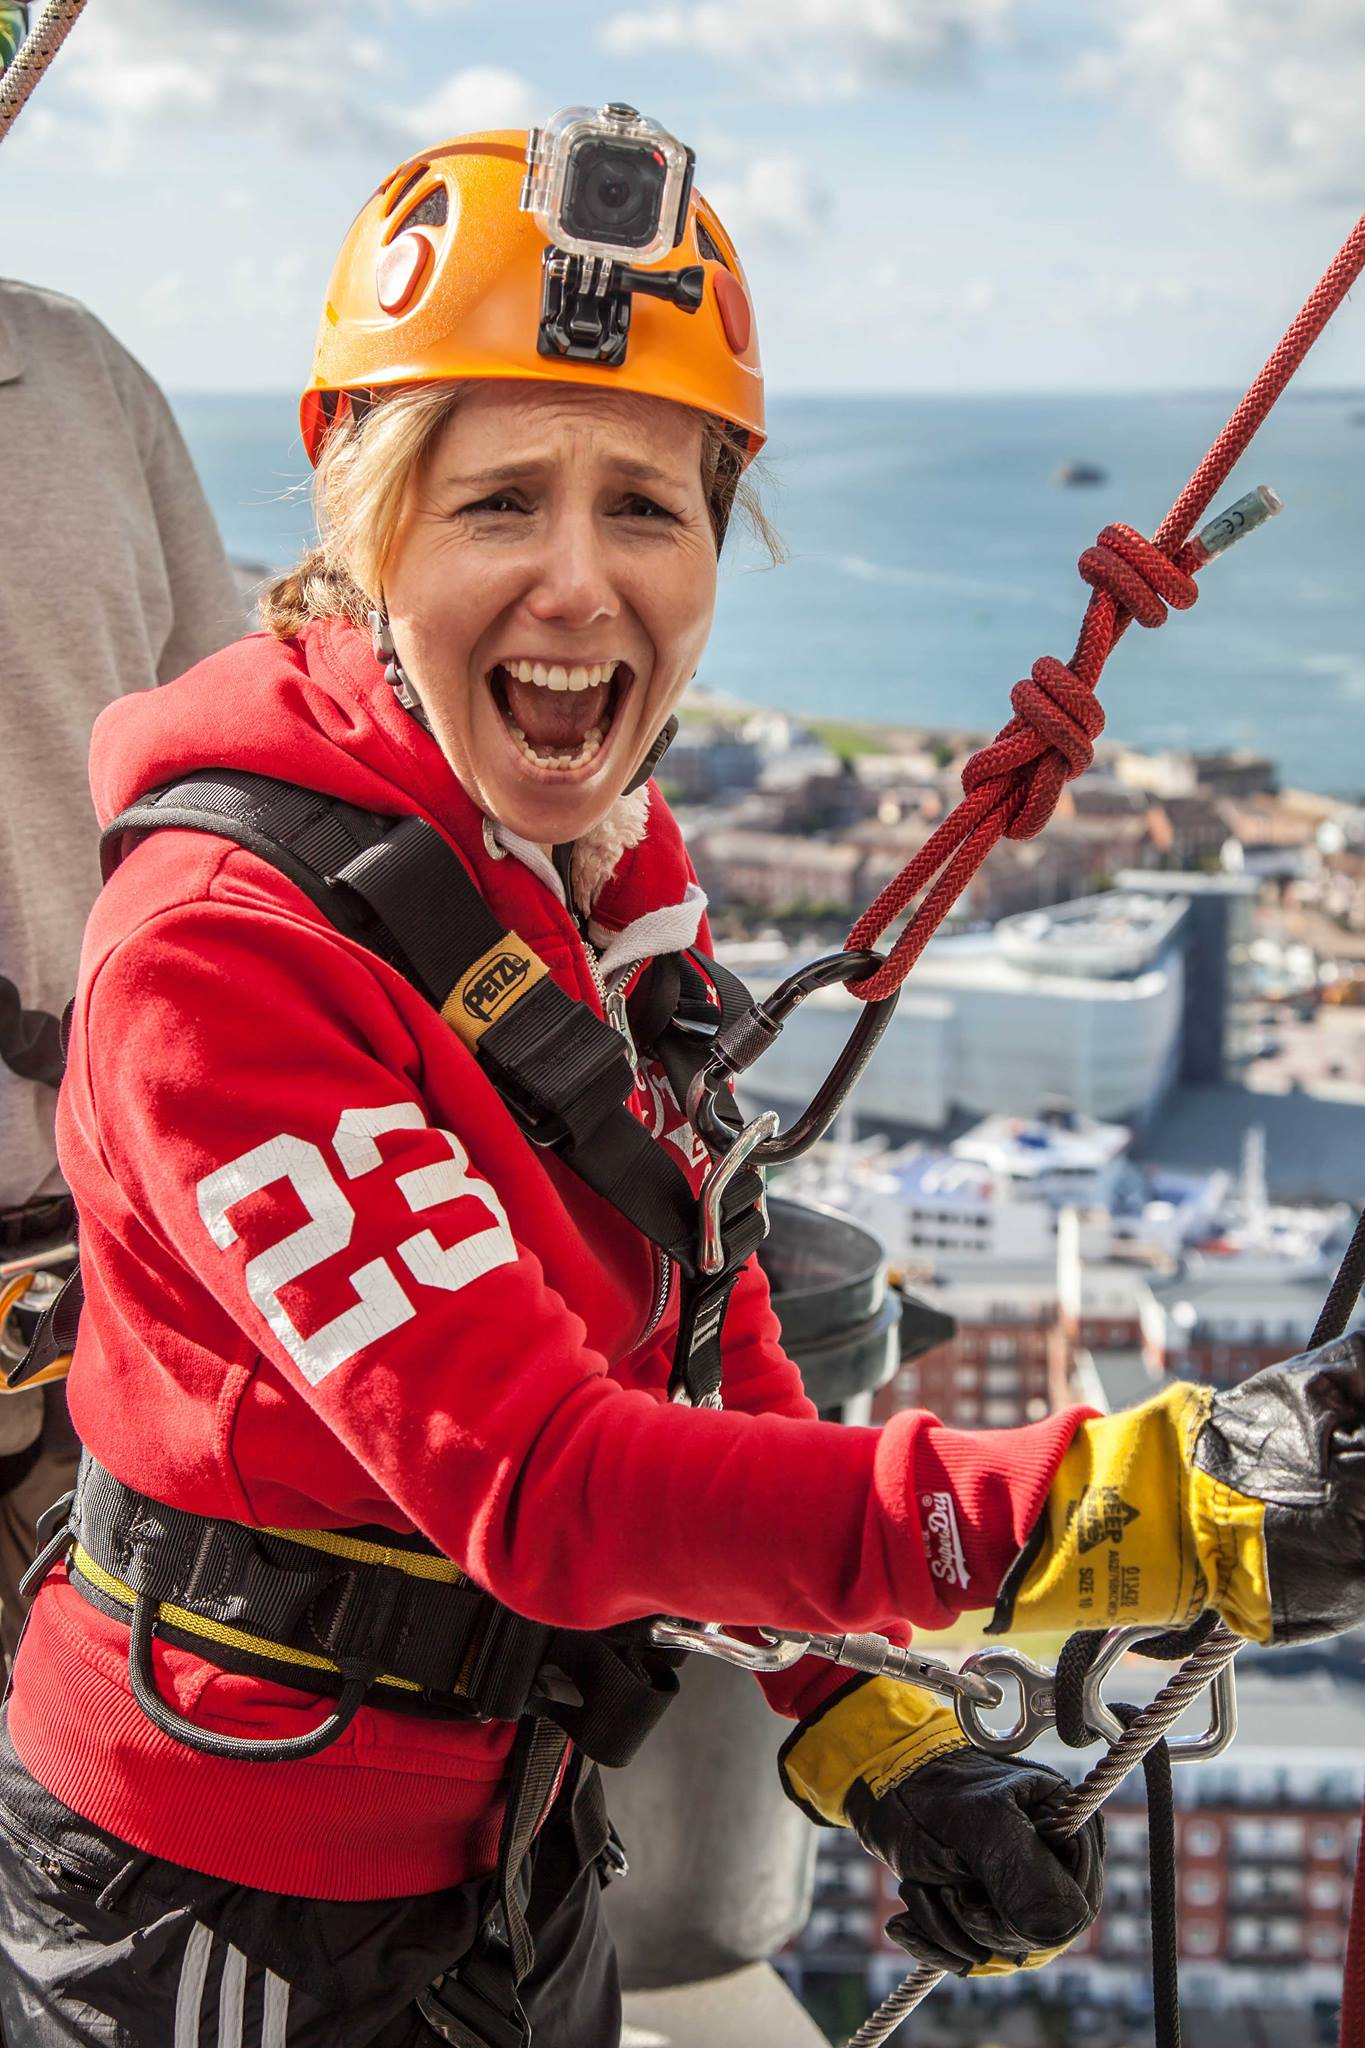 Sally Phillips at the top of the Spinnaker Tower preparing to abseil